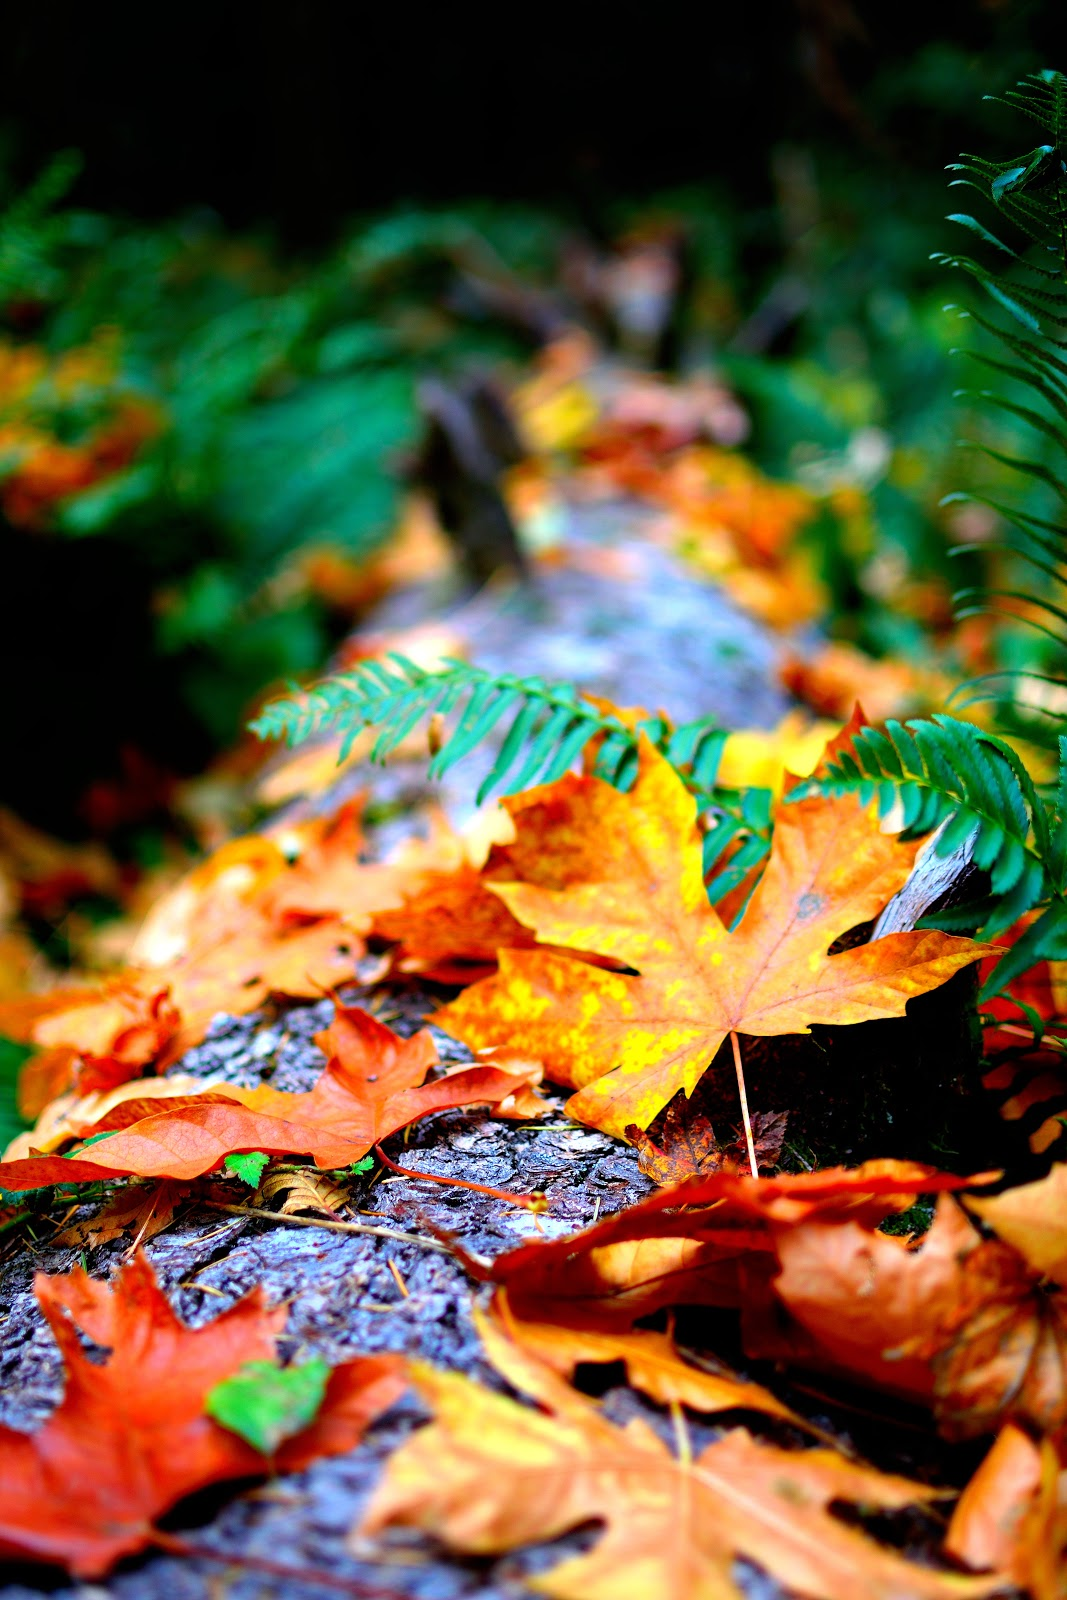 4k Wallpaper Autumn Leaves Blur Close Up Photo of Dry Leaves